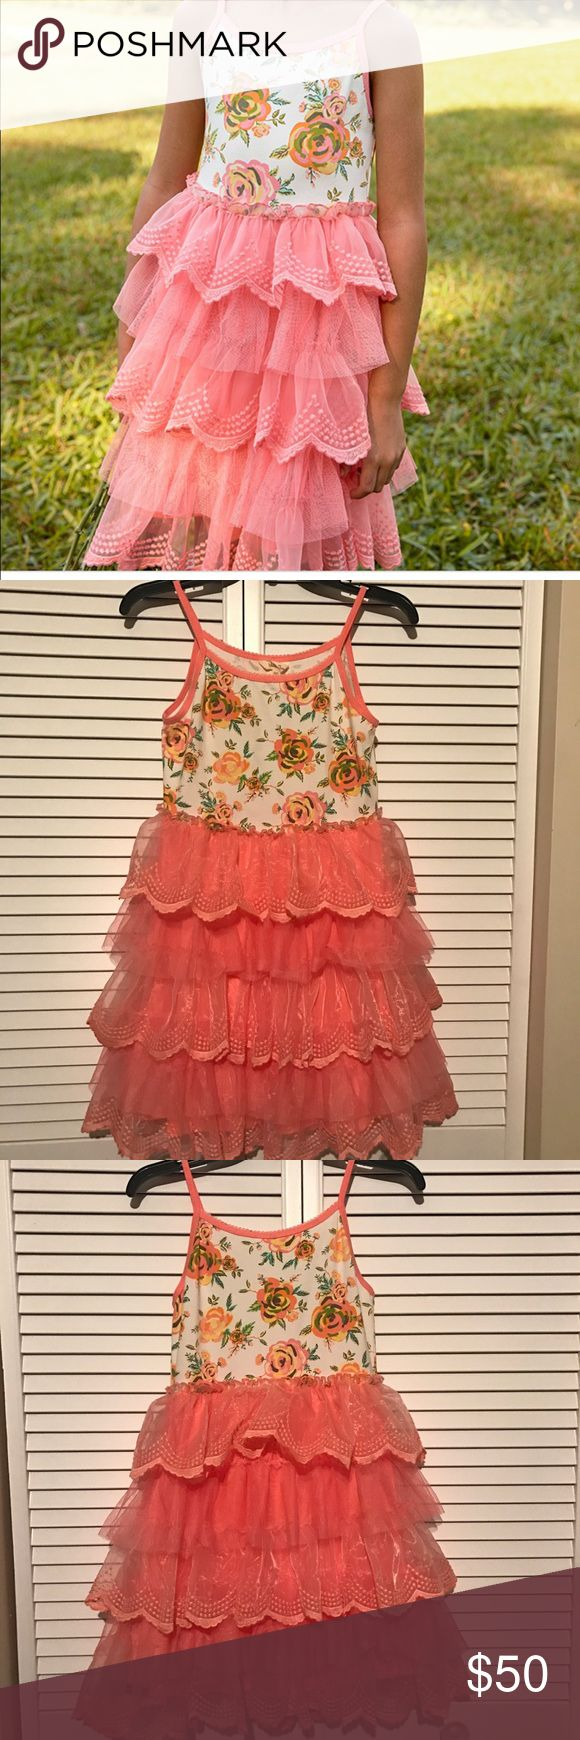 """Matilda Jane Dress Girls Matilda Jane Dress Size: 14 This Dress is Very Full At The Bottom... My Daughter Calls This a """" Twirl"""" Dress 😀 This Would Make A Wonderful Holiday Dress, Just Throw a Cardigan on If Its Cold!  Comes From A Smoke and Pet Free Home Matilda Jane Dresses Formal"""